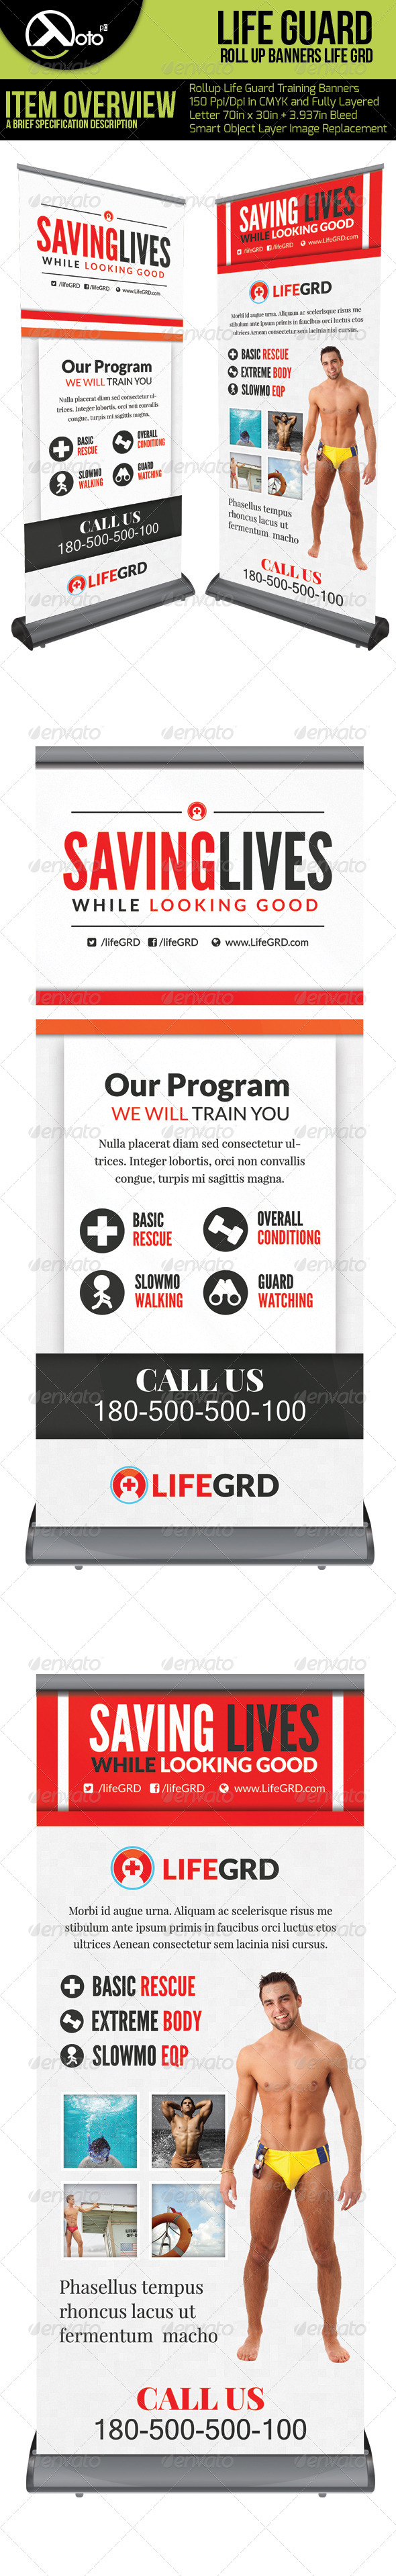 GraphicRiver Life Guard Trainning Roll Up Banner 6335267